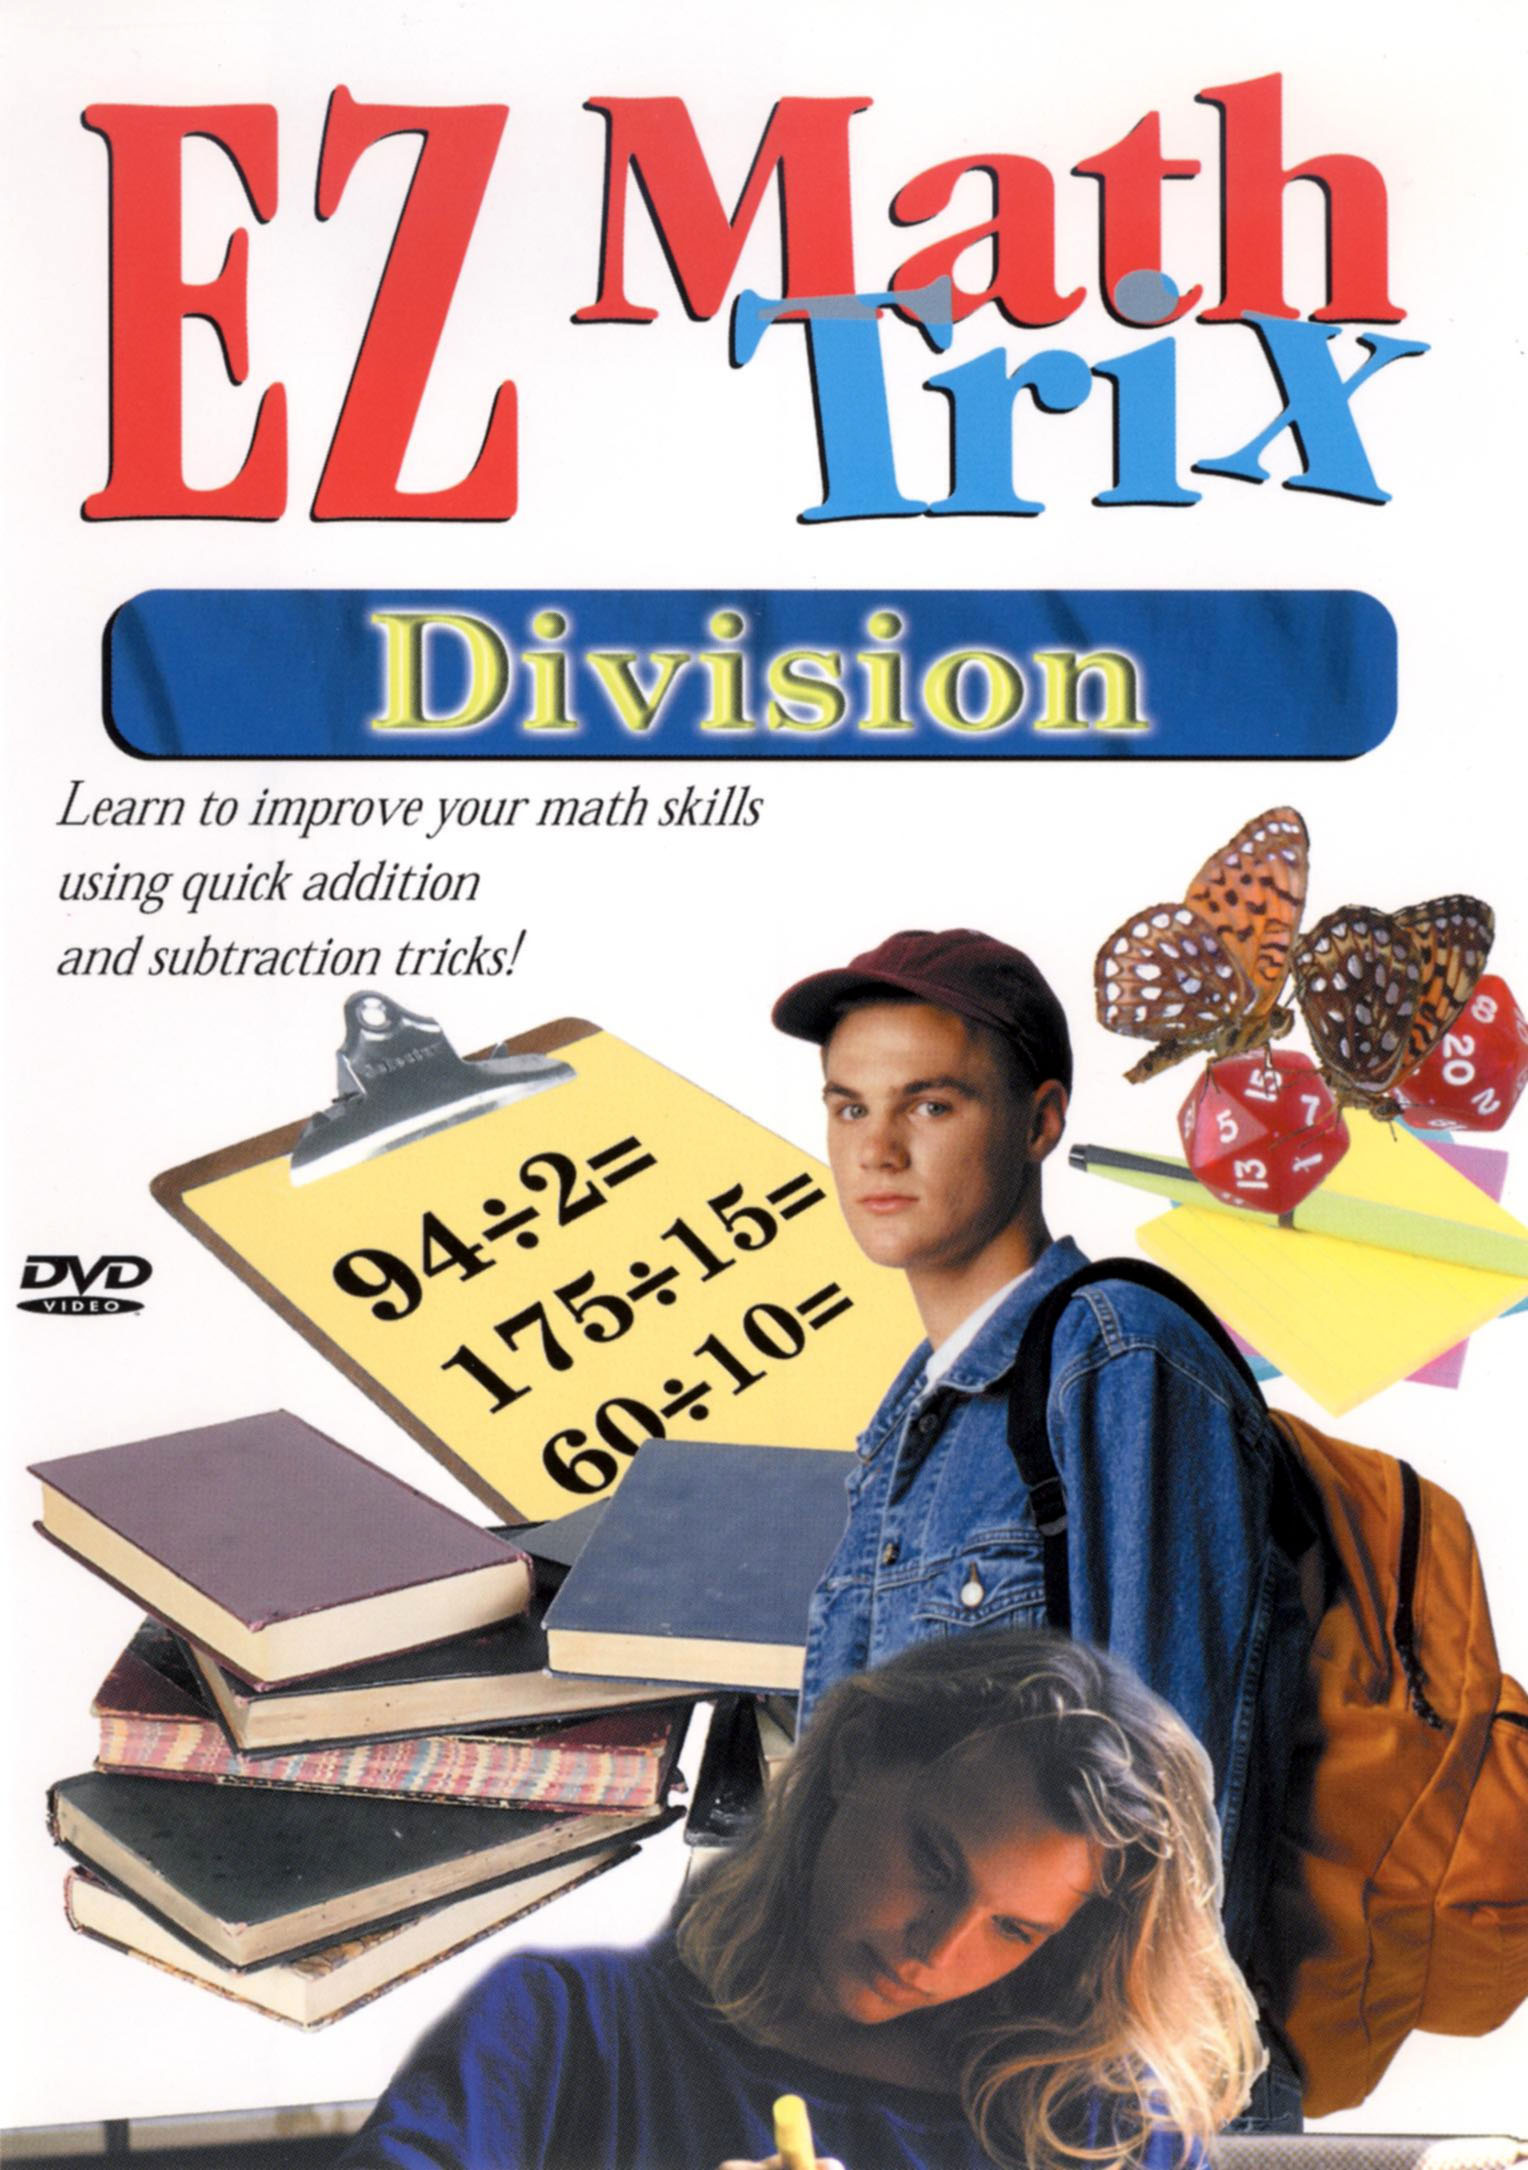 EZ Math Tricks: Division